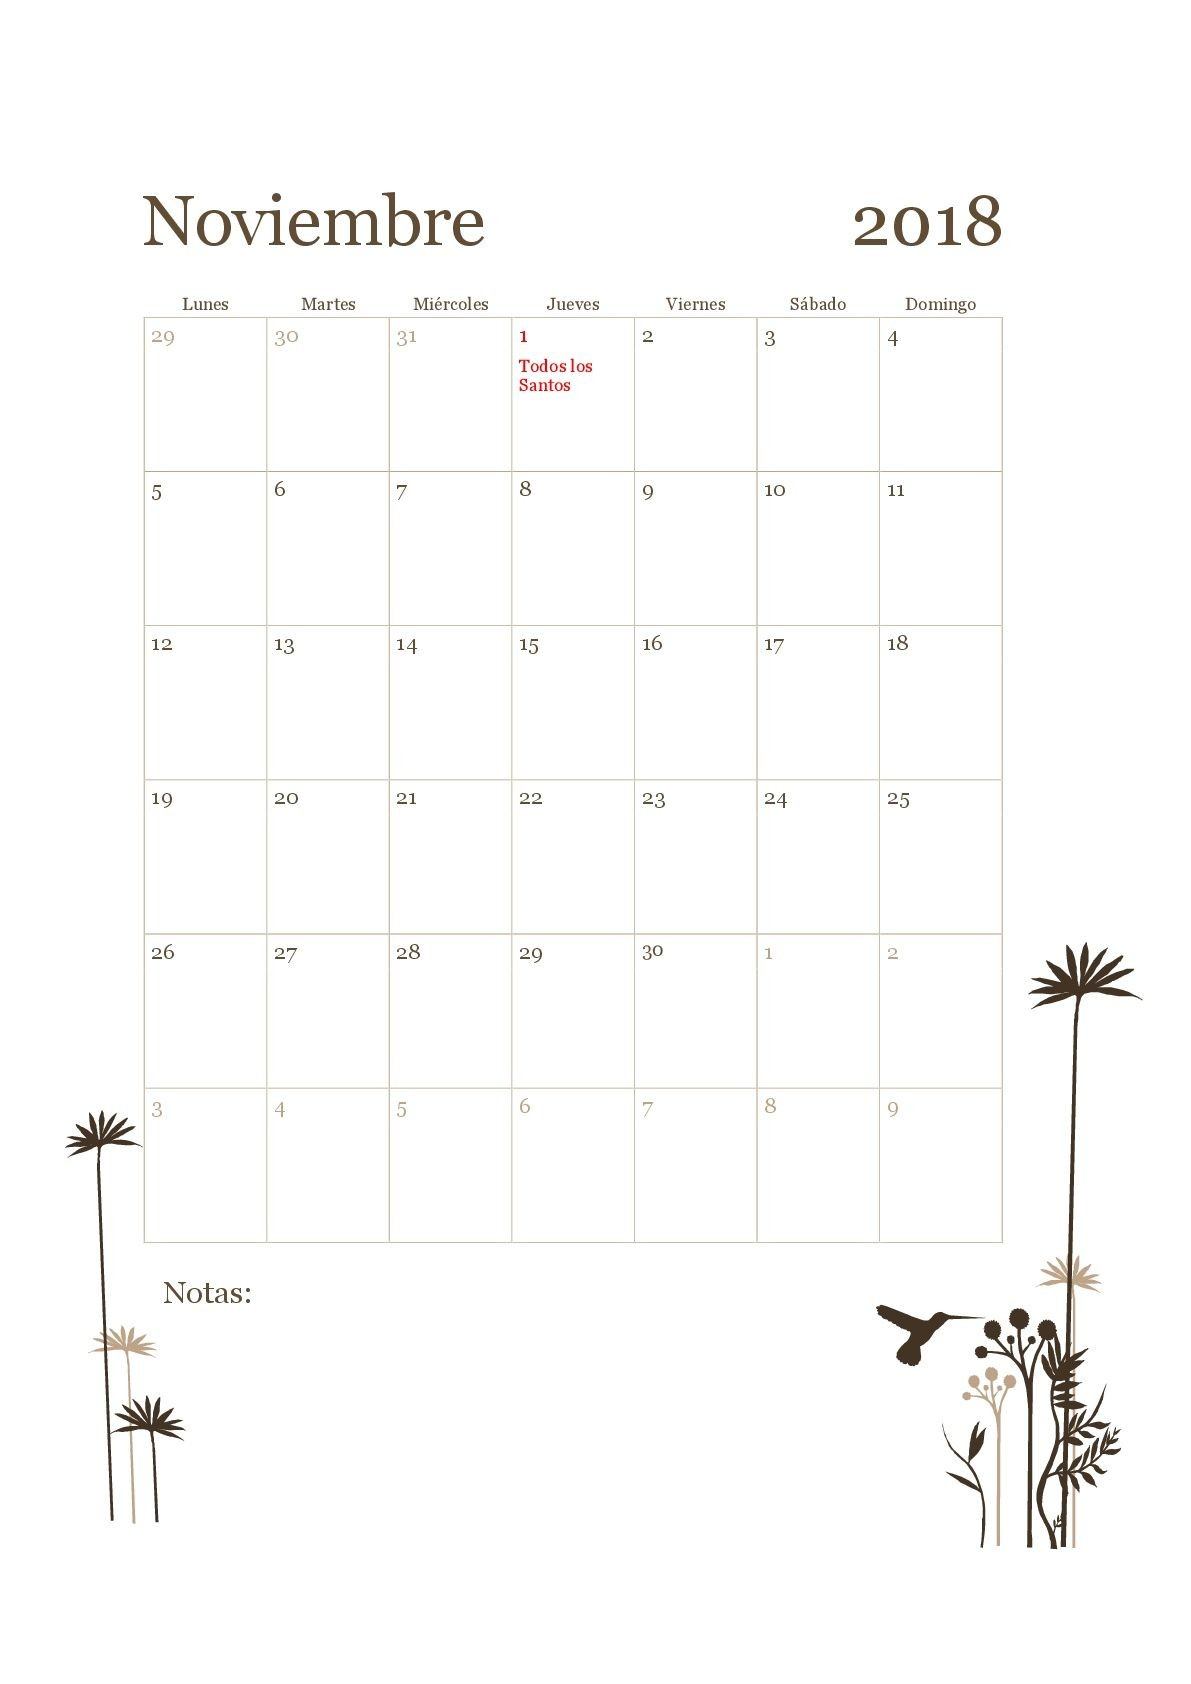 Calendario laboral de Madrid en el 2018 Calendario laboral 2018